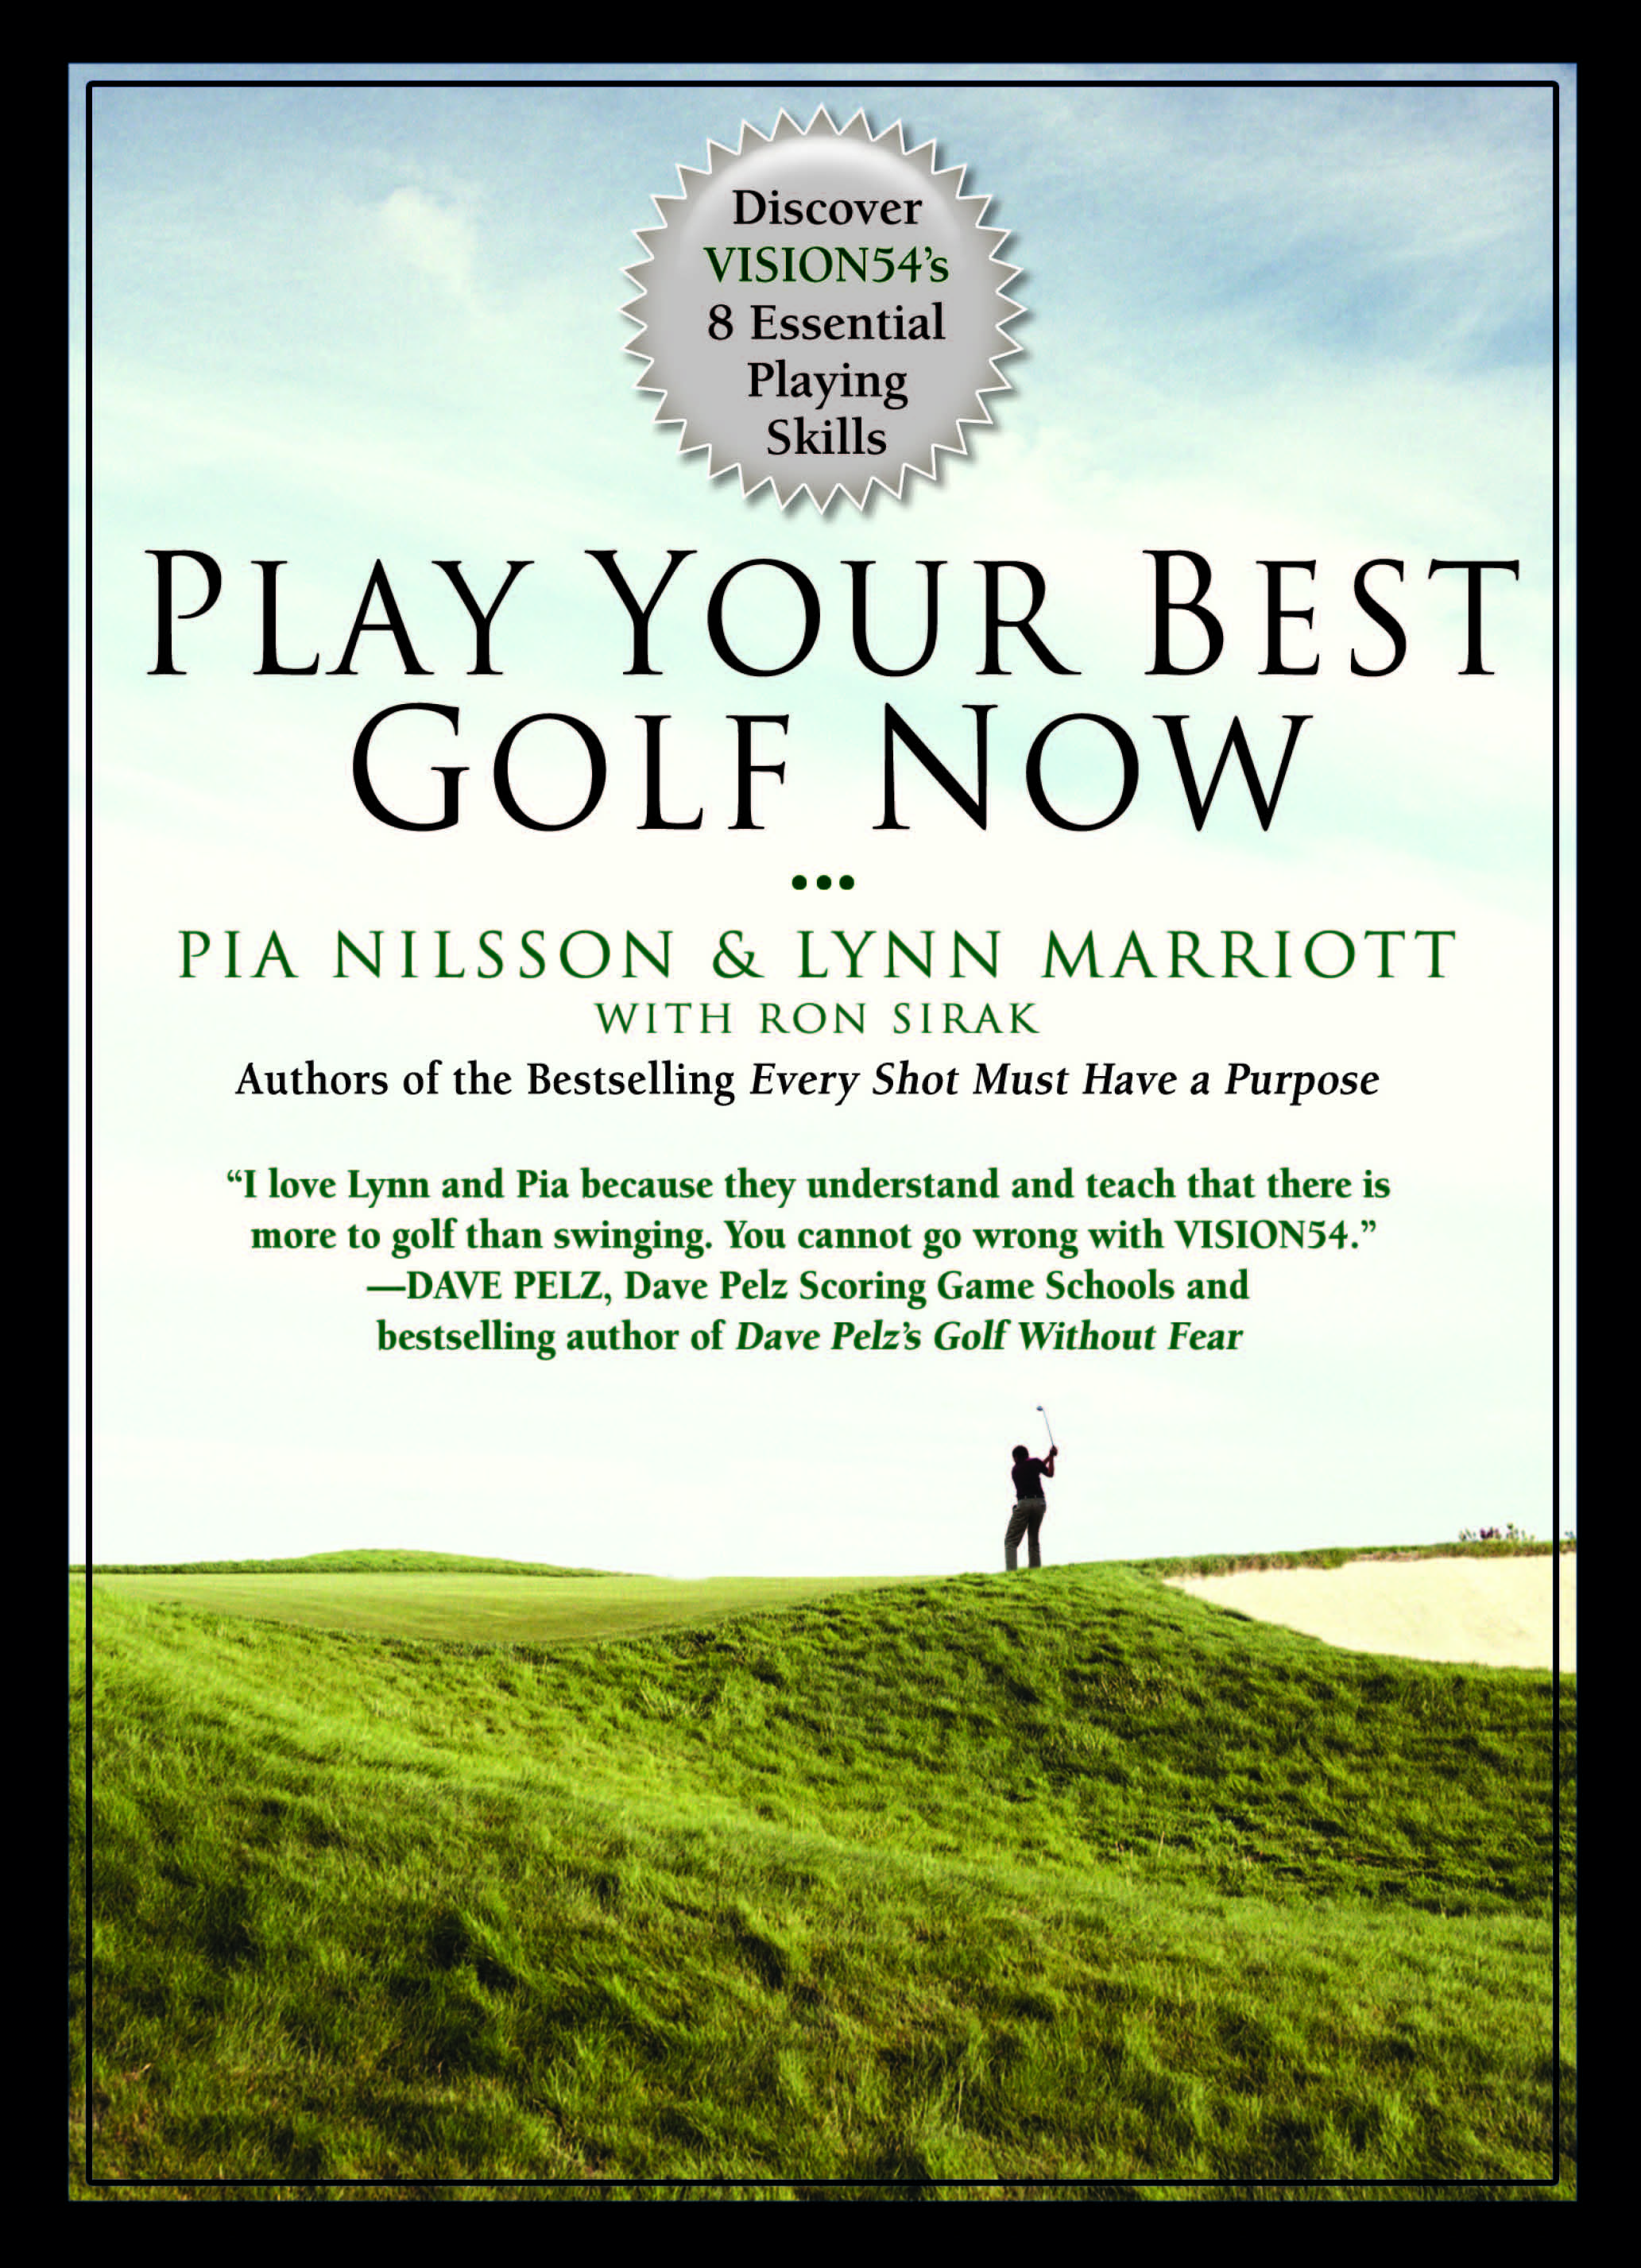 Famous Golf Quotes Play Your Best Golf Now Where The Secret Meets The Kingdom In